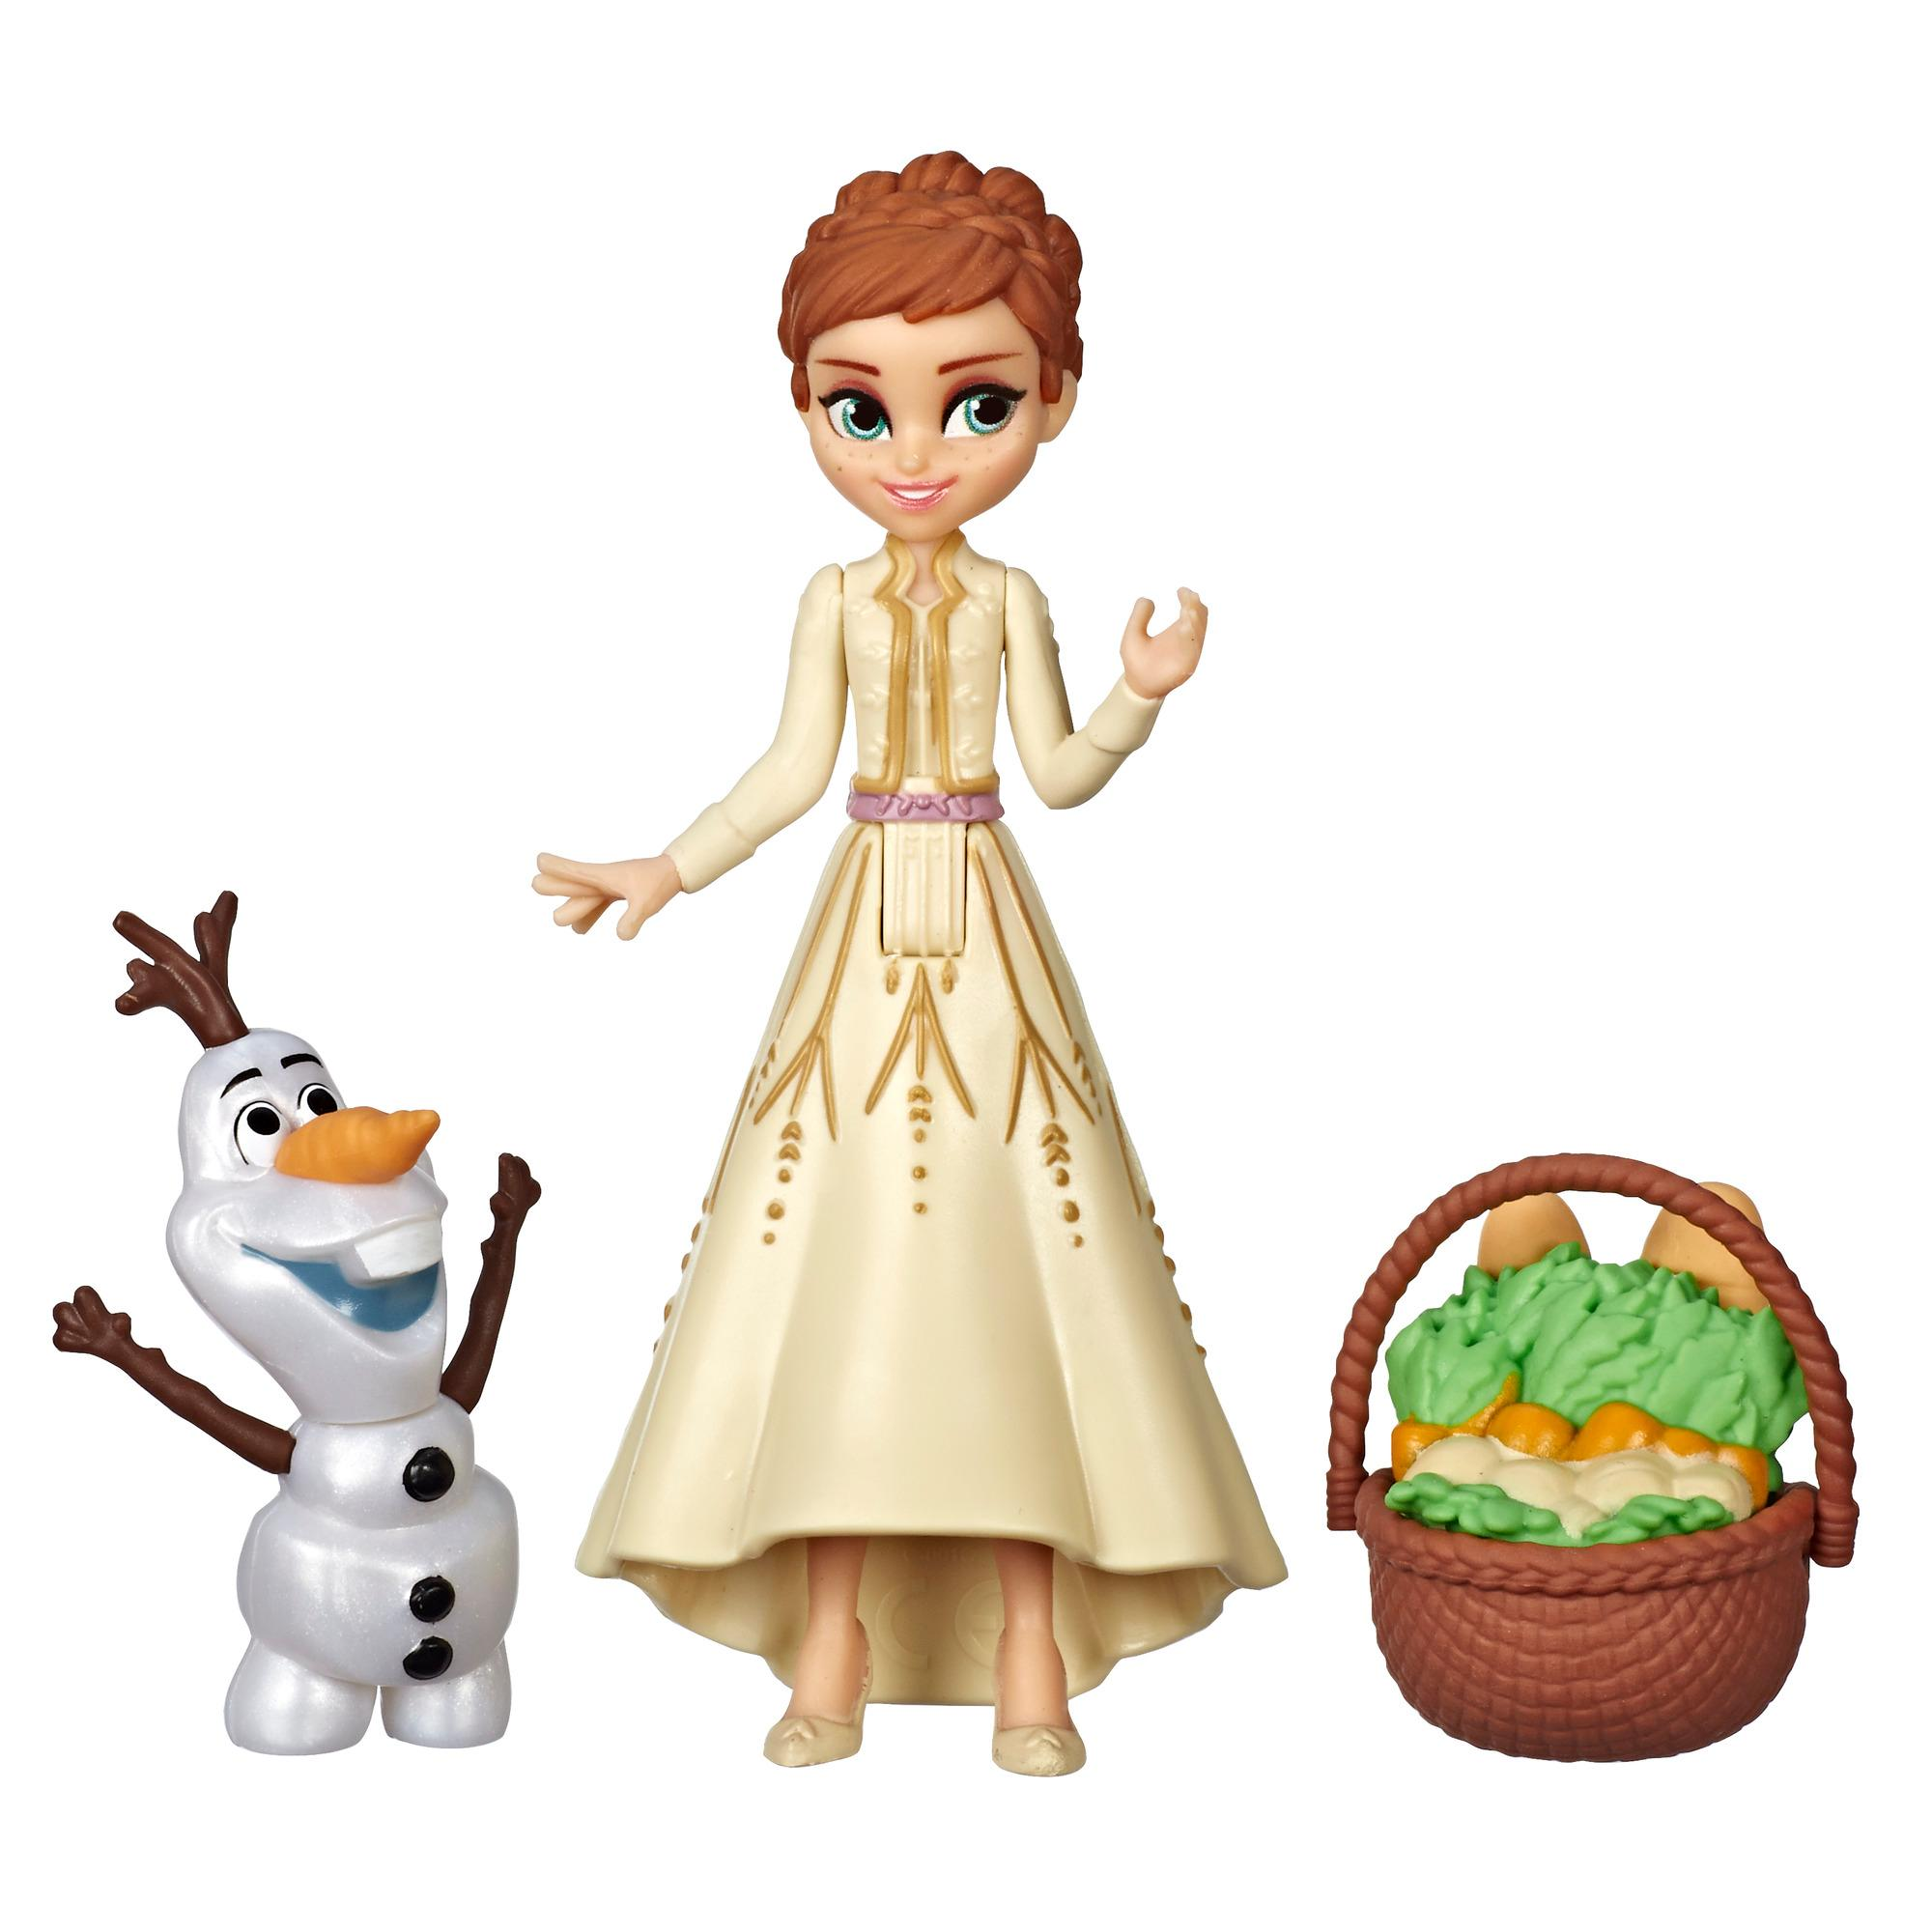 Disney Frozen Anna and Olaf Small Dolls With Basket Accessory, Inspired by the Disney Frozen 2 Movie